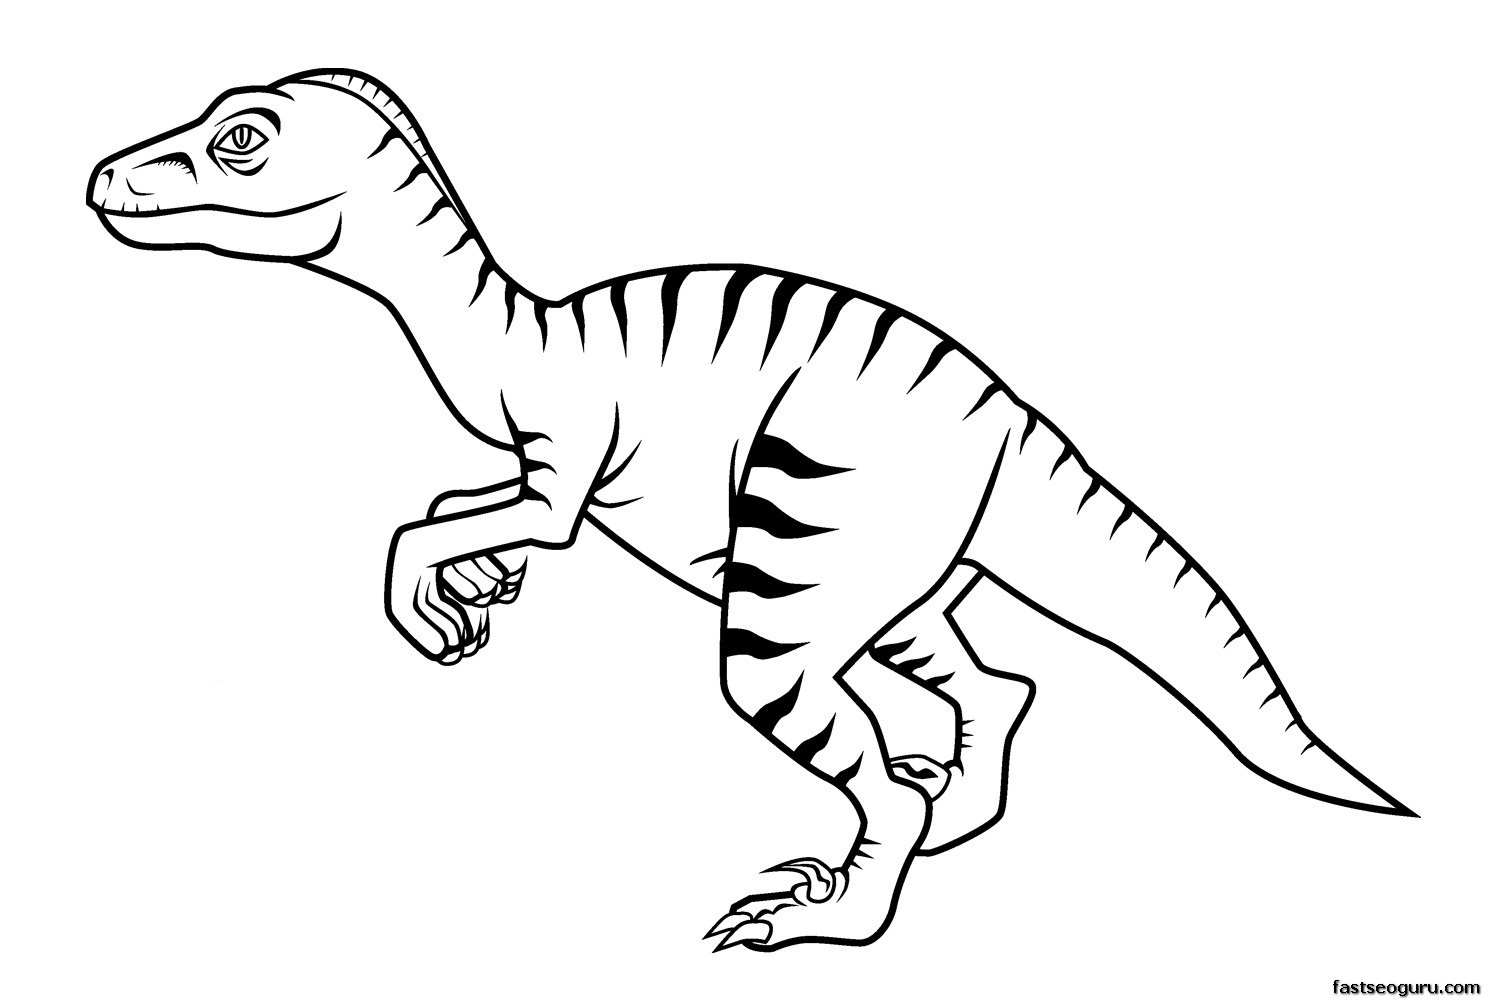 dinossaur coloring pages - photo#7